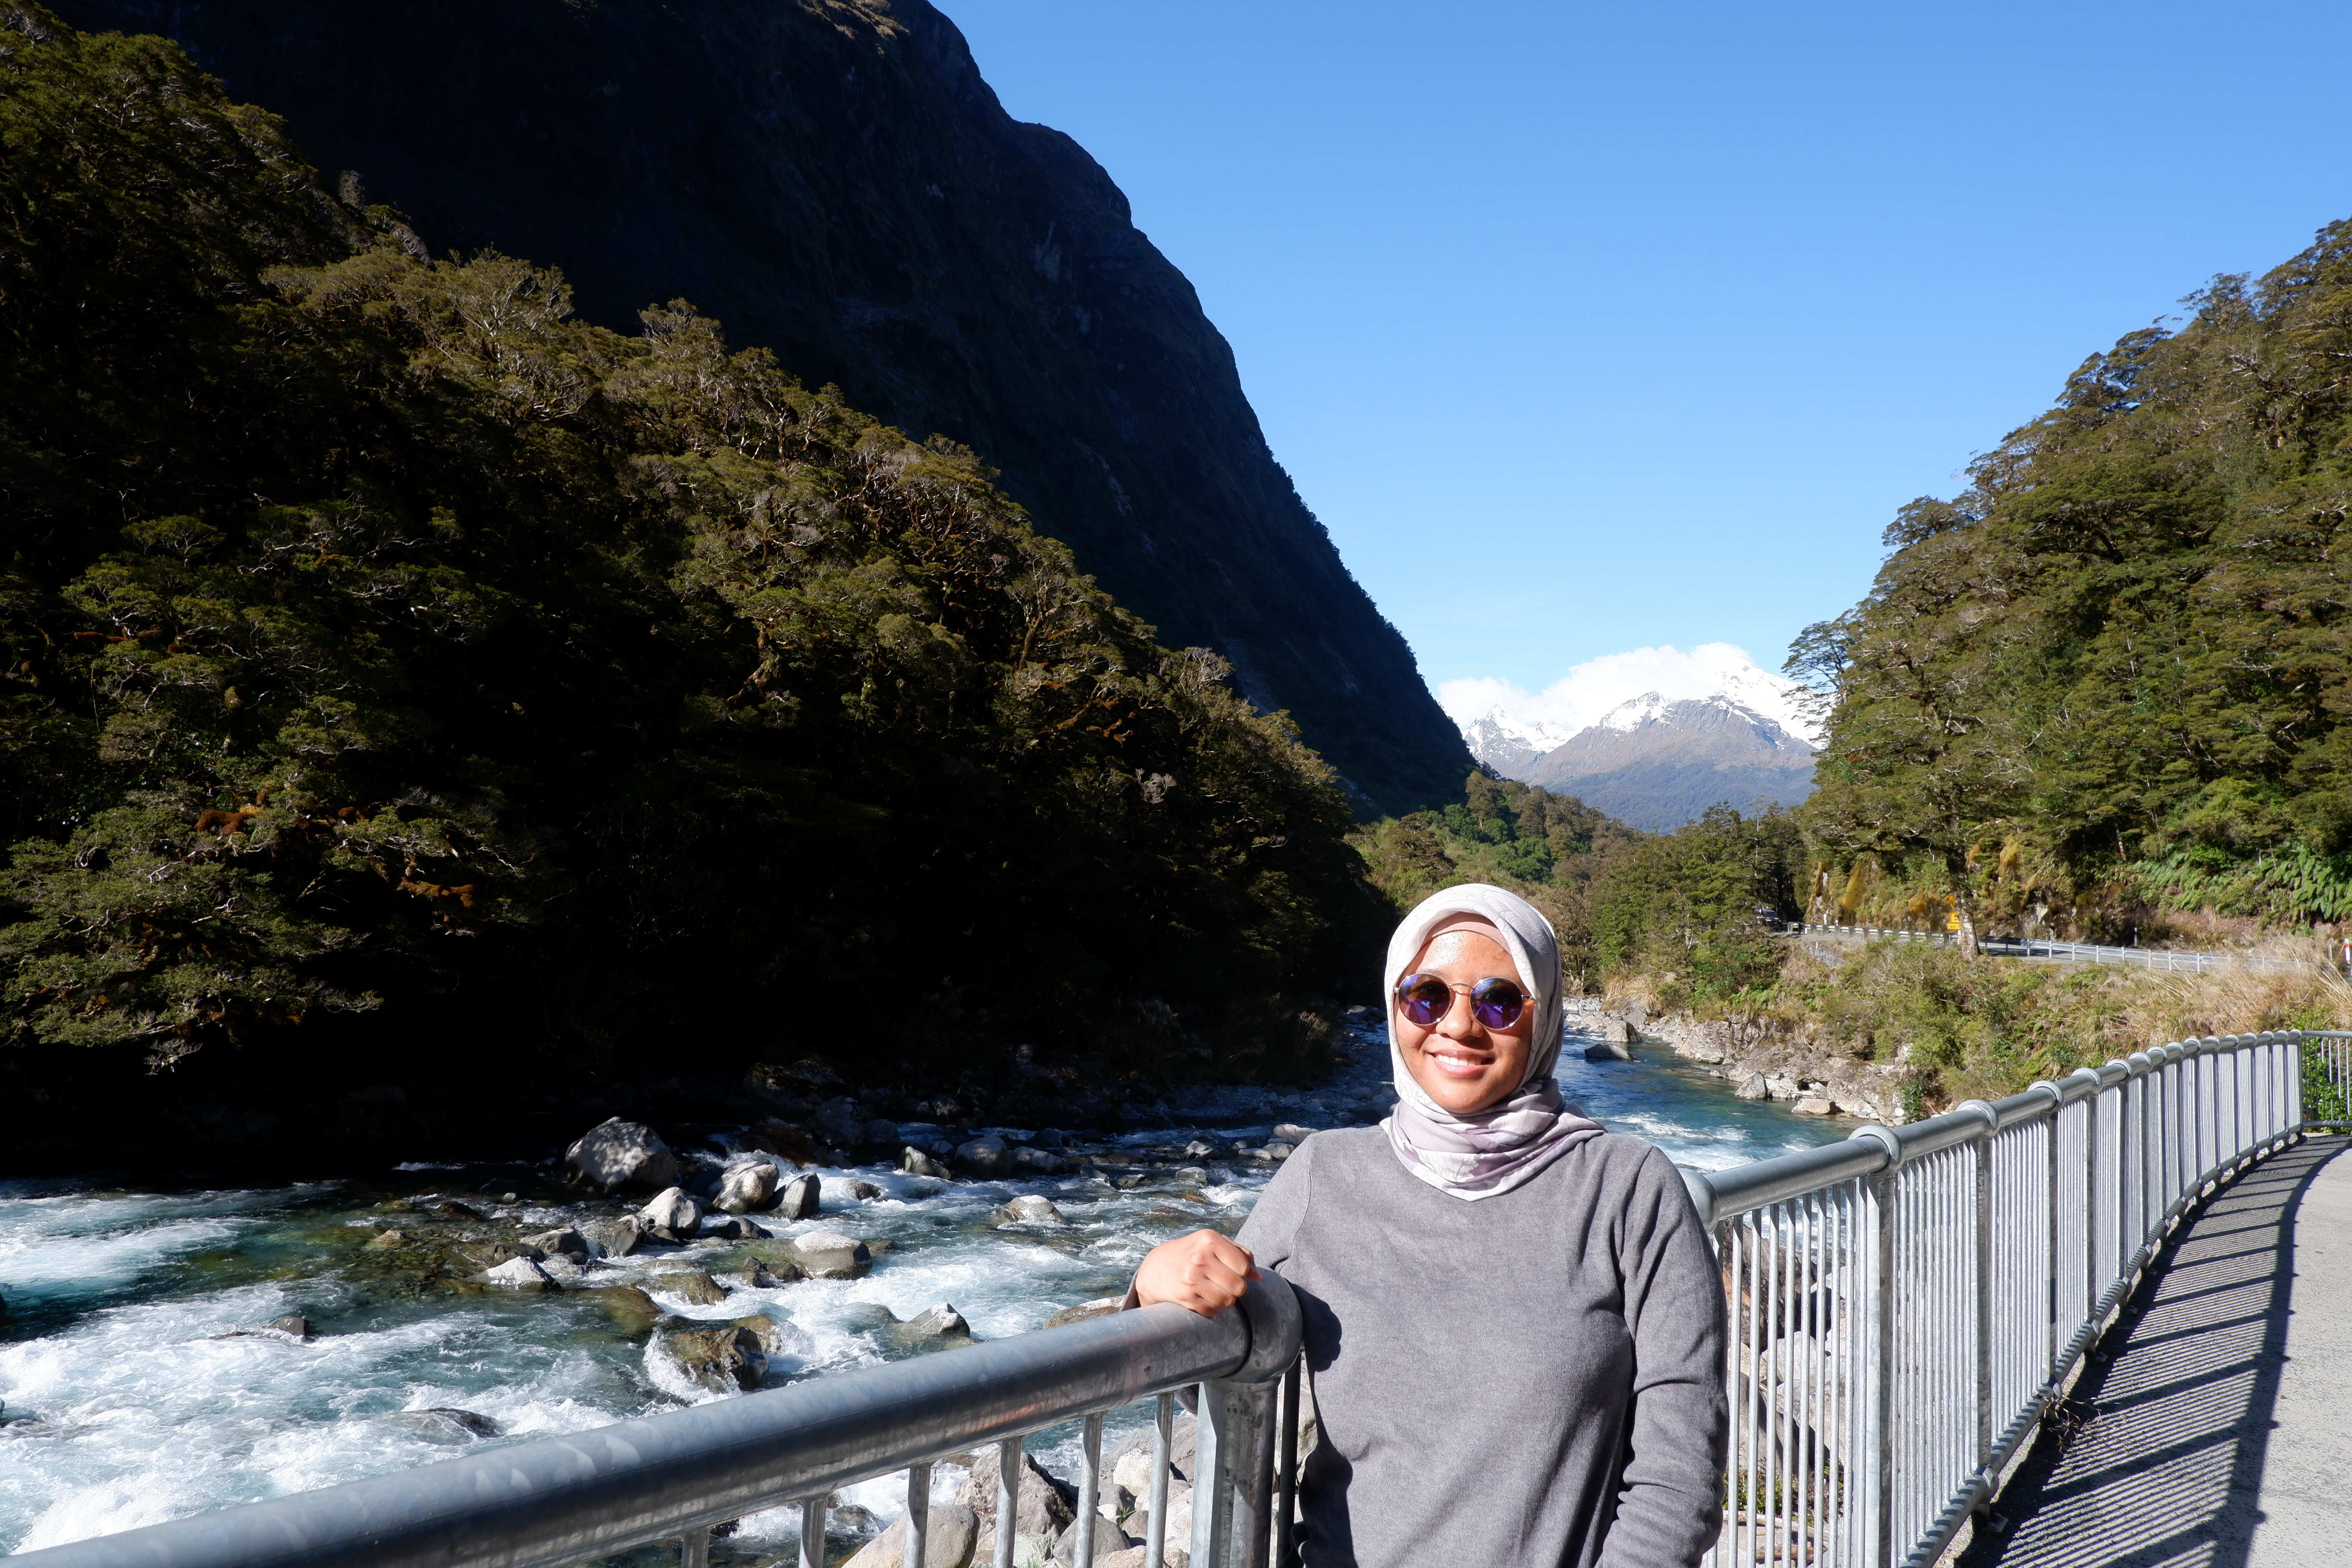 Fara Shabira Arrasya, the author, while travelling in New Zealand